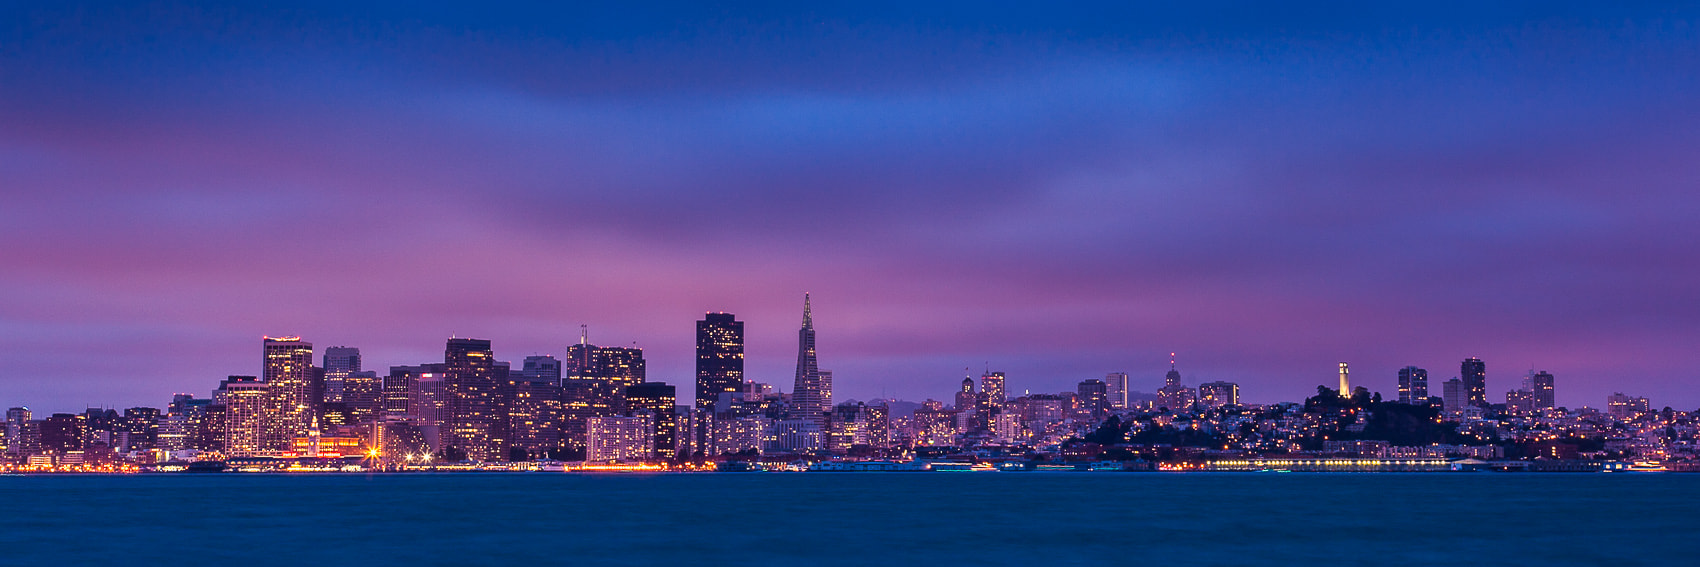 Photograph Twilight over San Francisco by Mike Wiacek on 500px